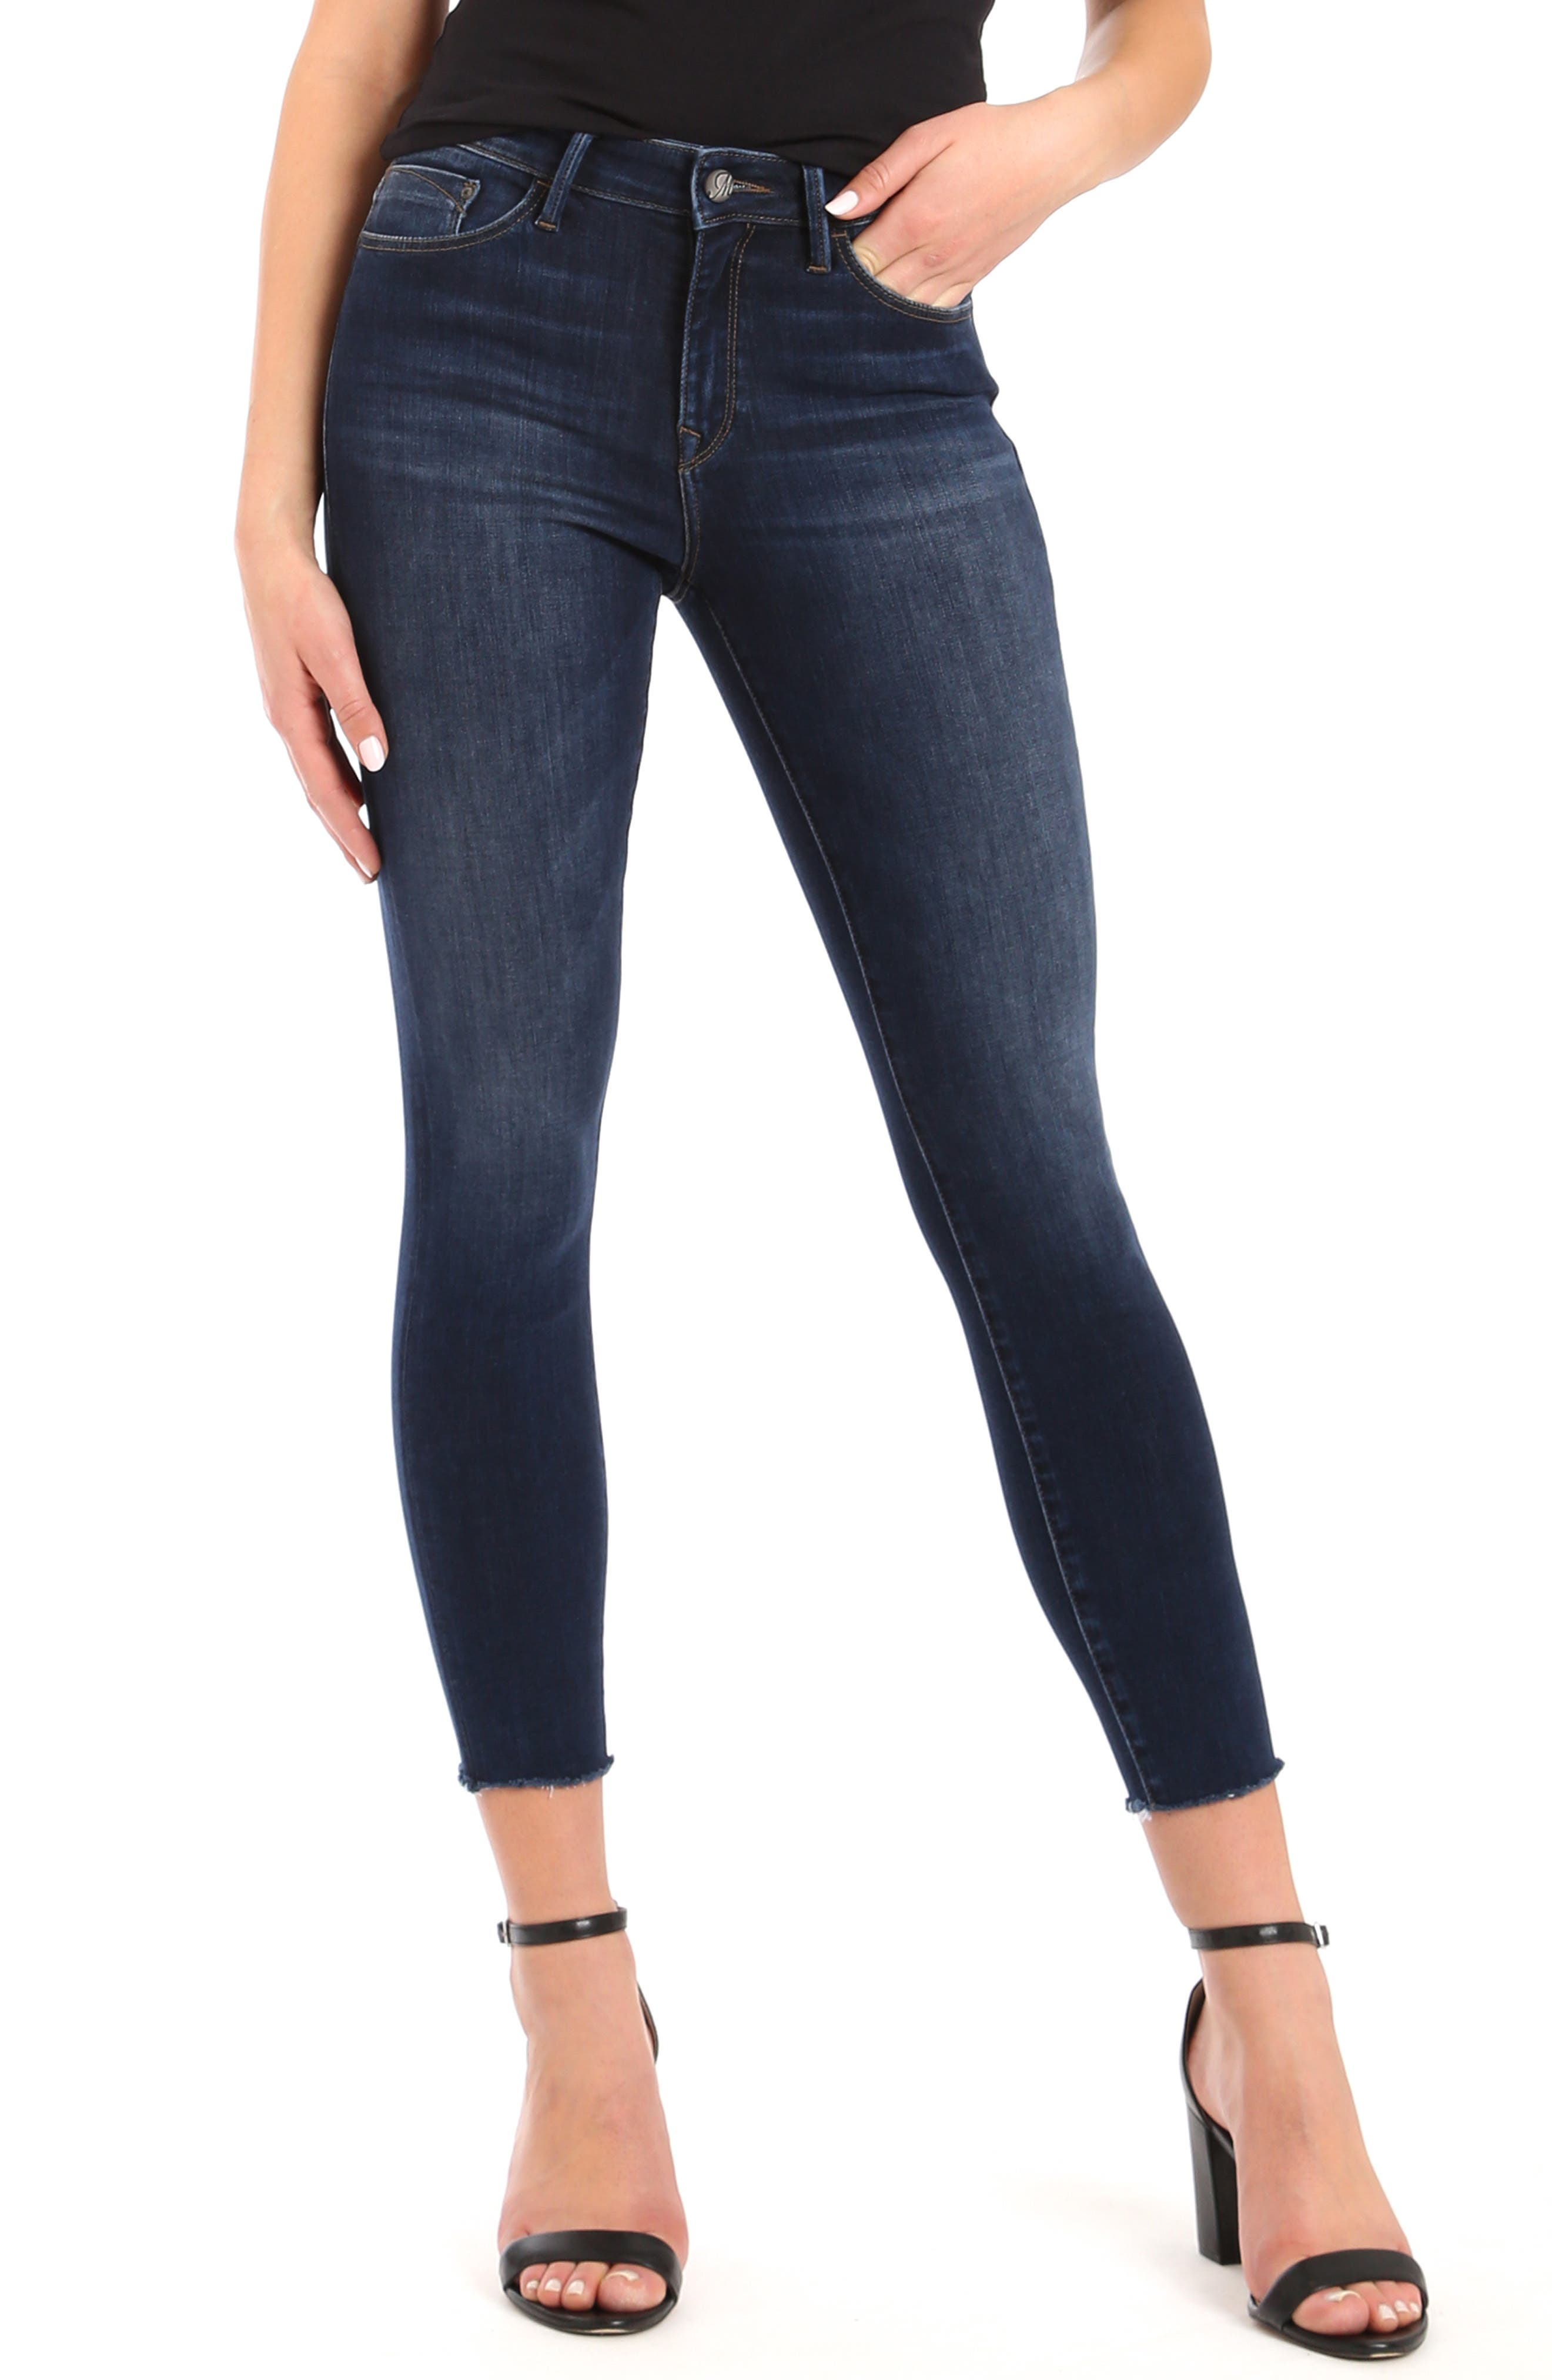 Alissa Ankle Jeans